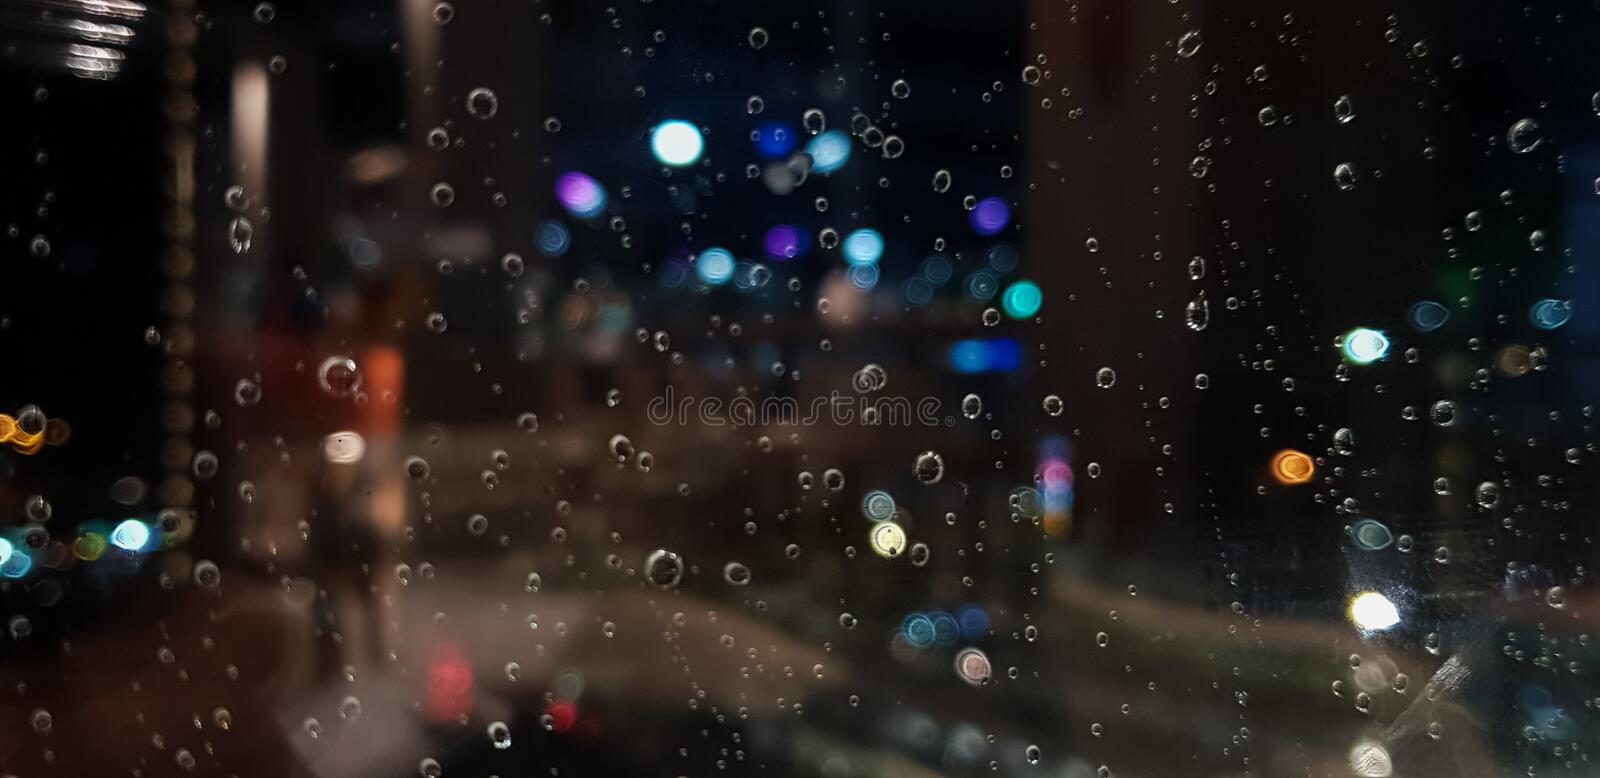 Drop of water rain on window glass surface with City light blur background. Photos from mobile.  royalty free stock images